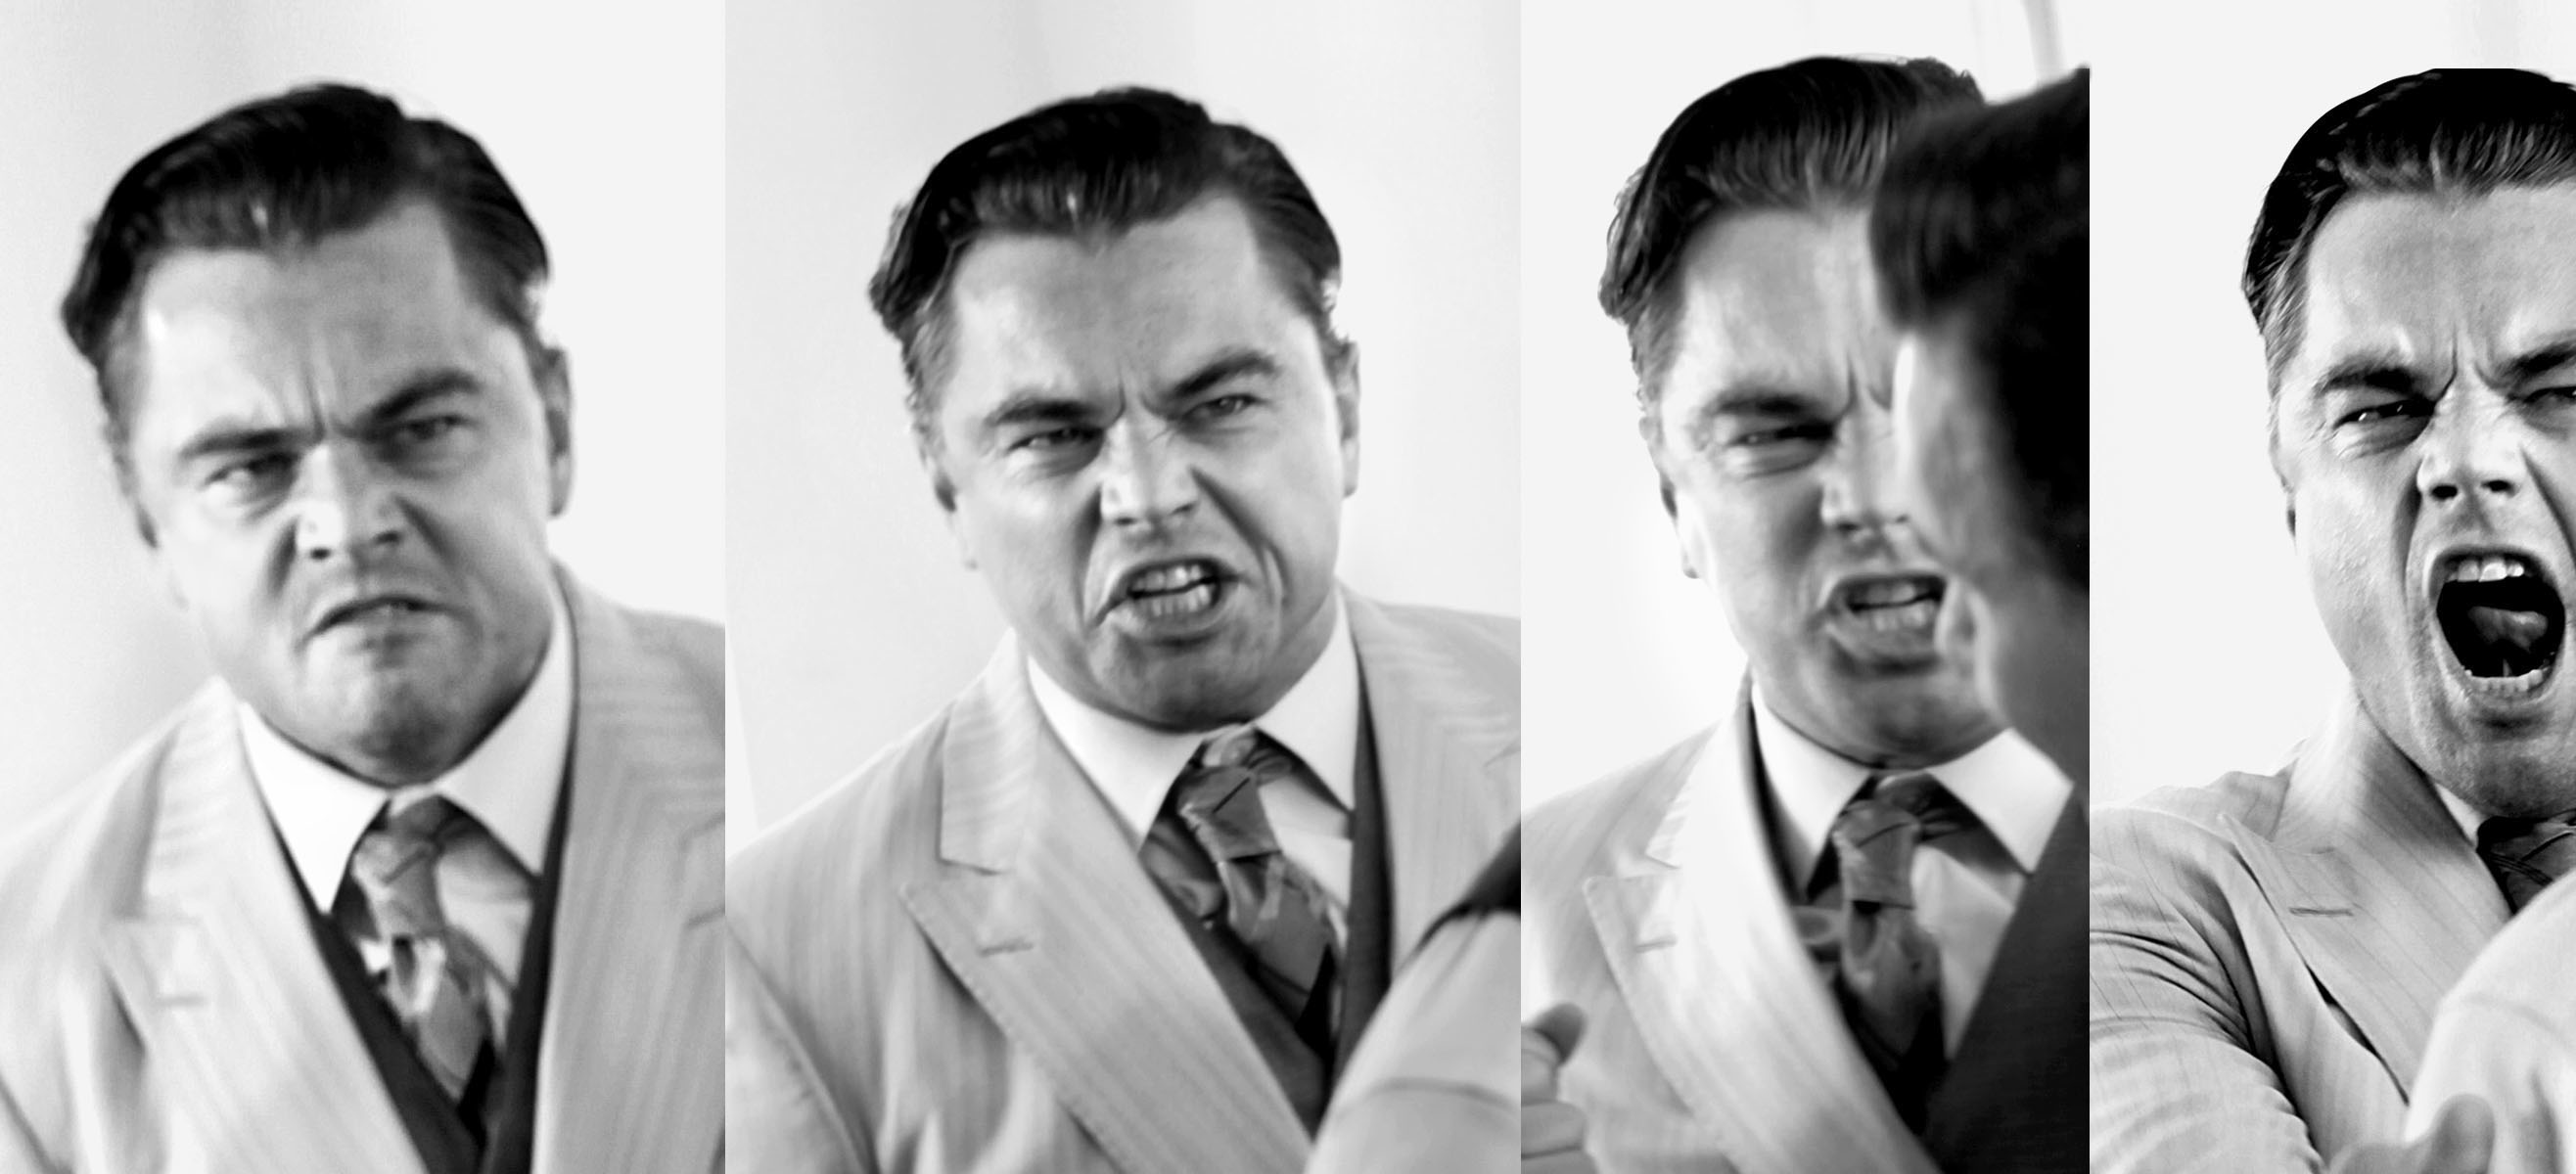 leonardo-dicaprio-a-guide-to-cool-folkr-21